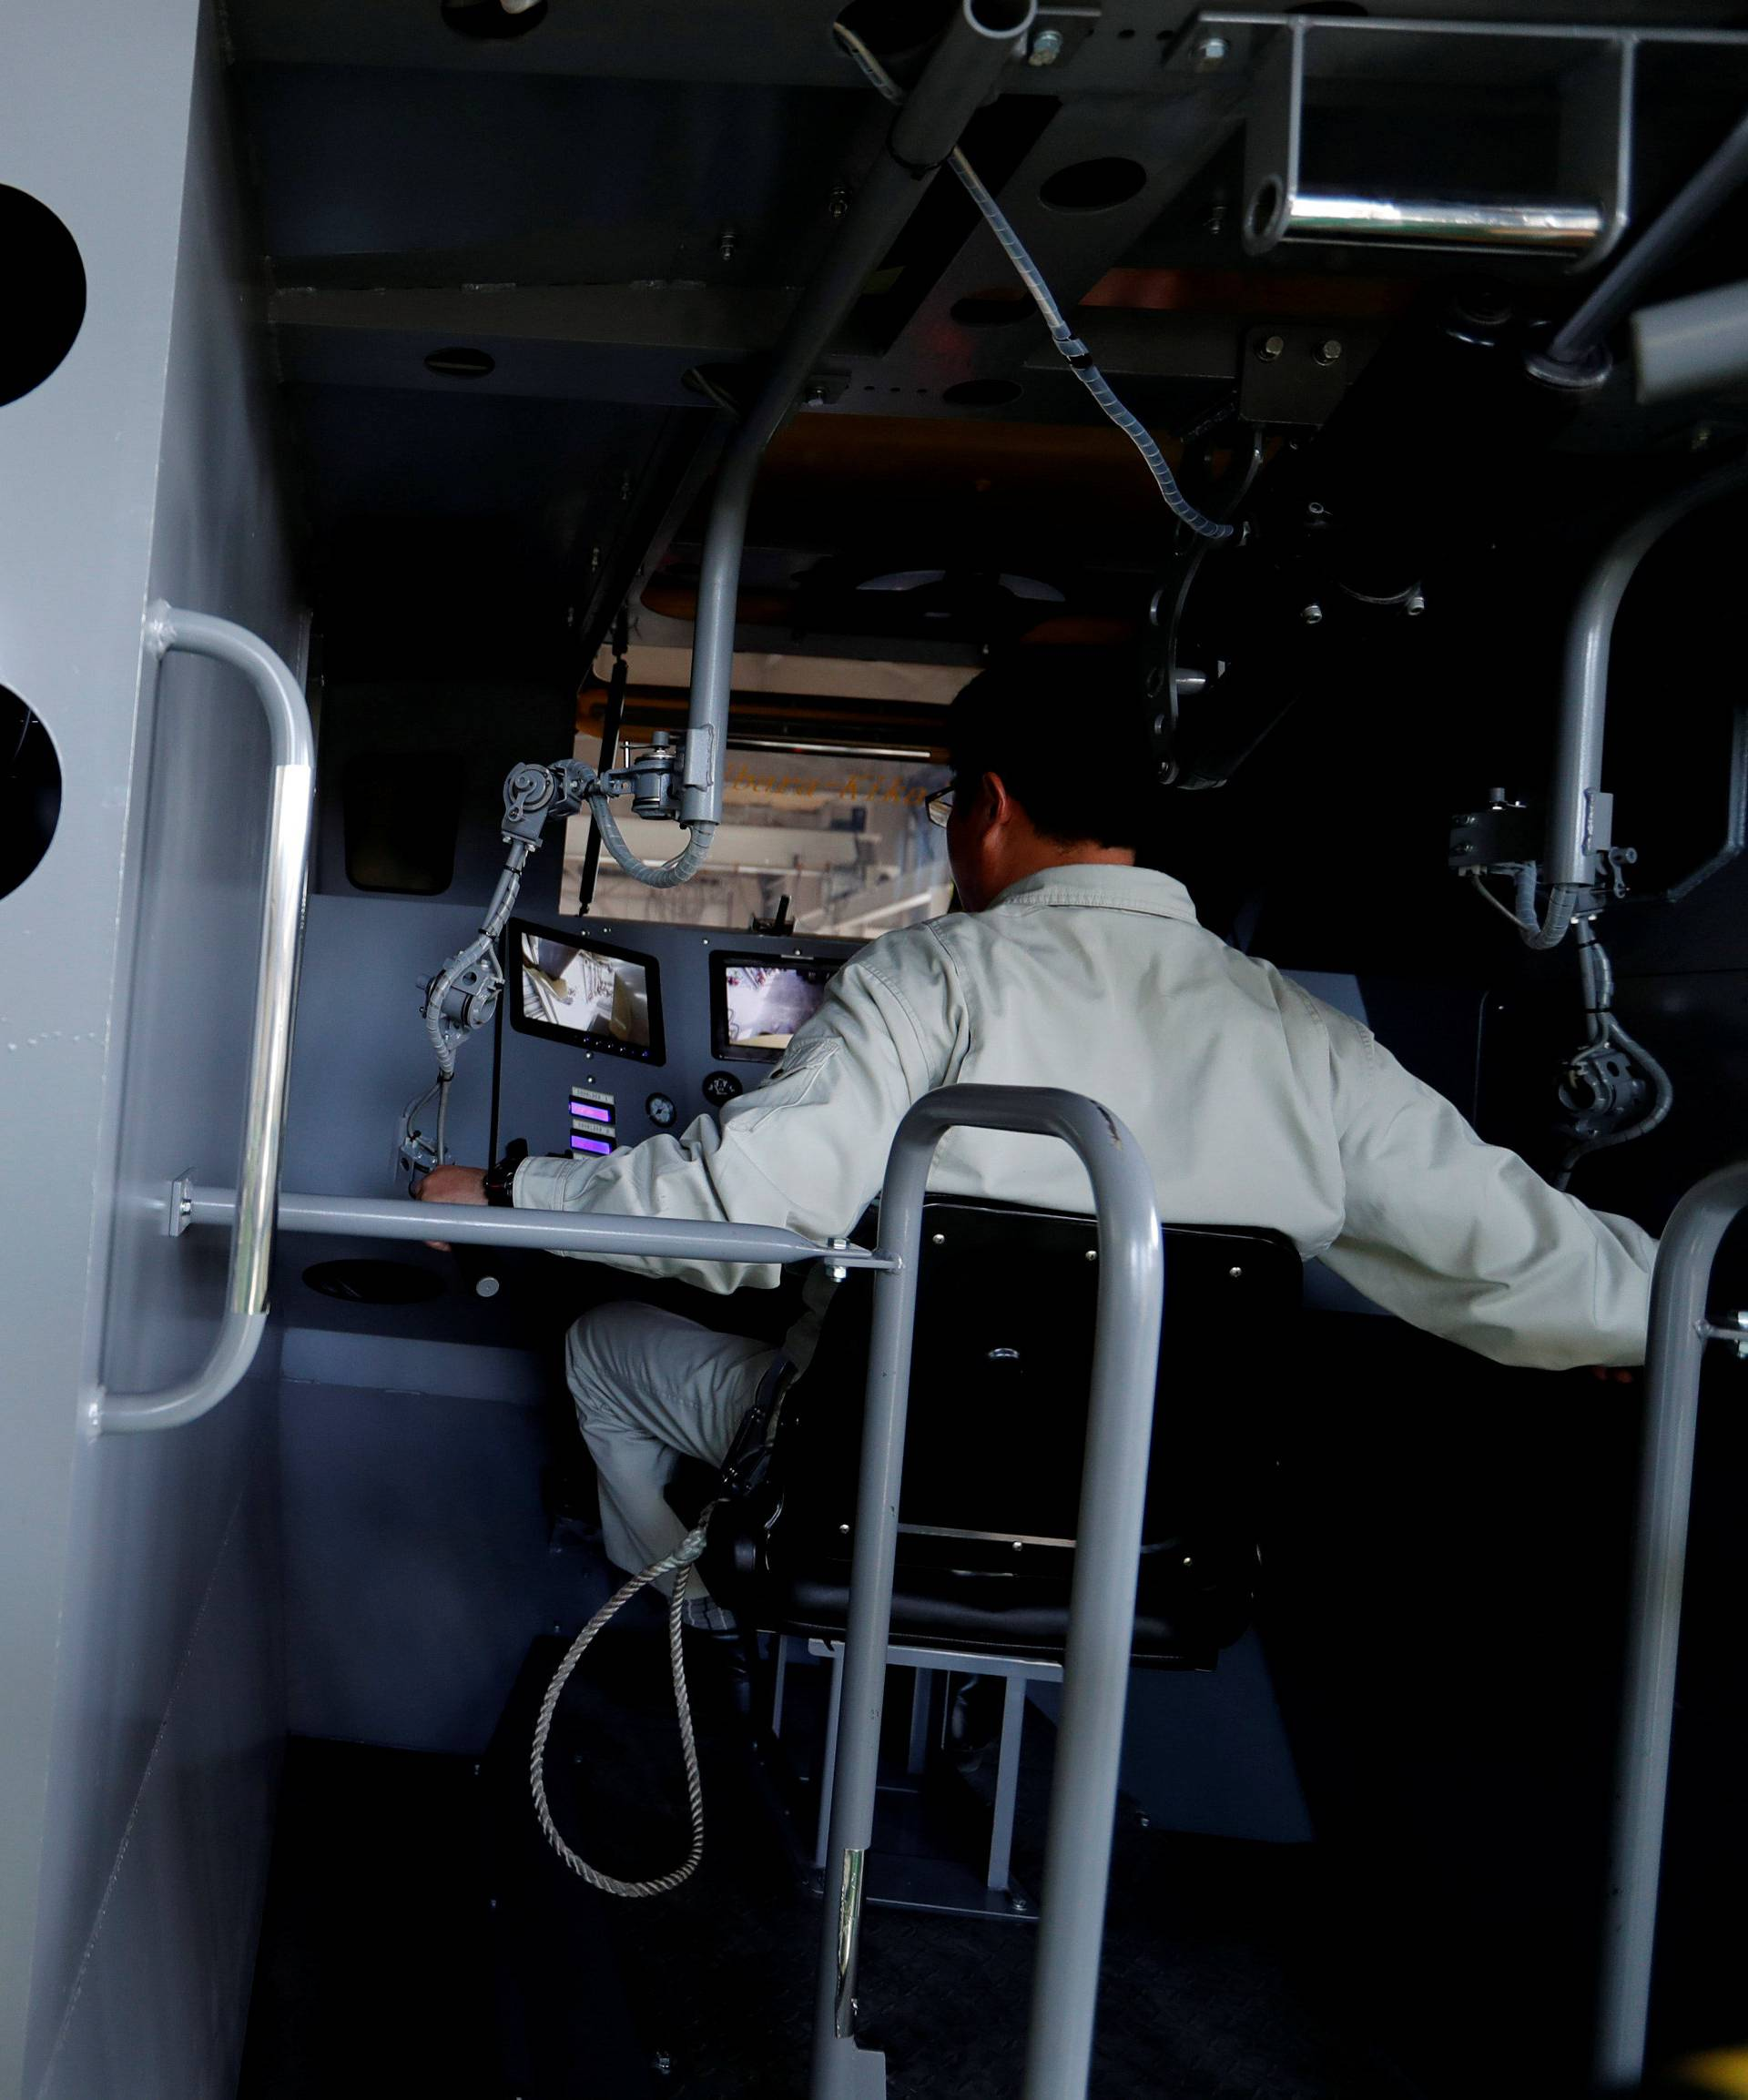 Sakakibara Kikai's engineer Masaaki Nagumo controls the bipedal robot Mononofu from its cockpit during its demonstration at its factory in Shinto Village